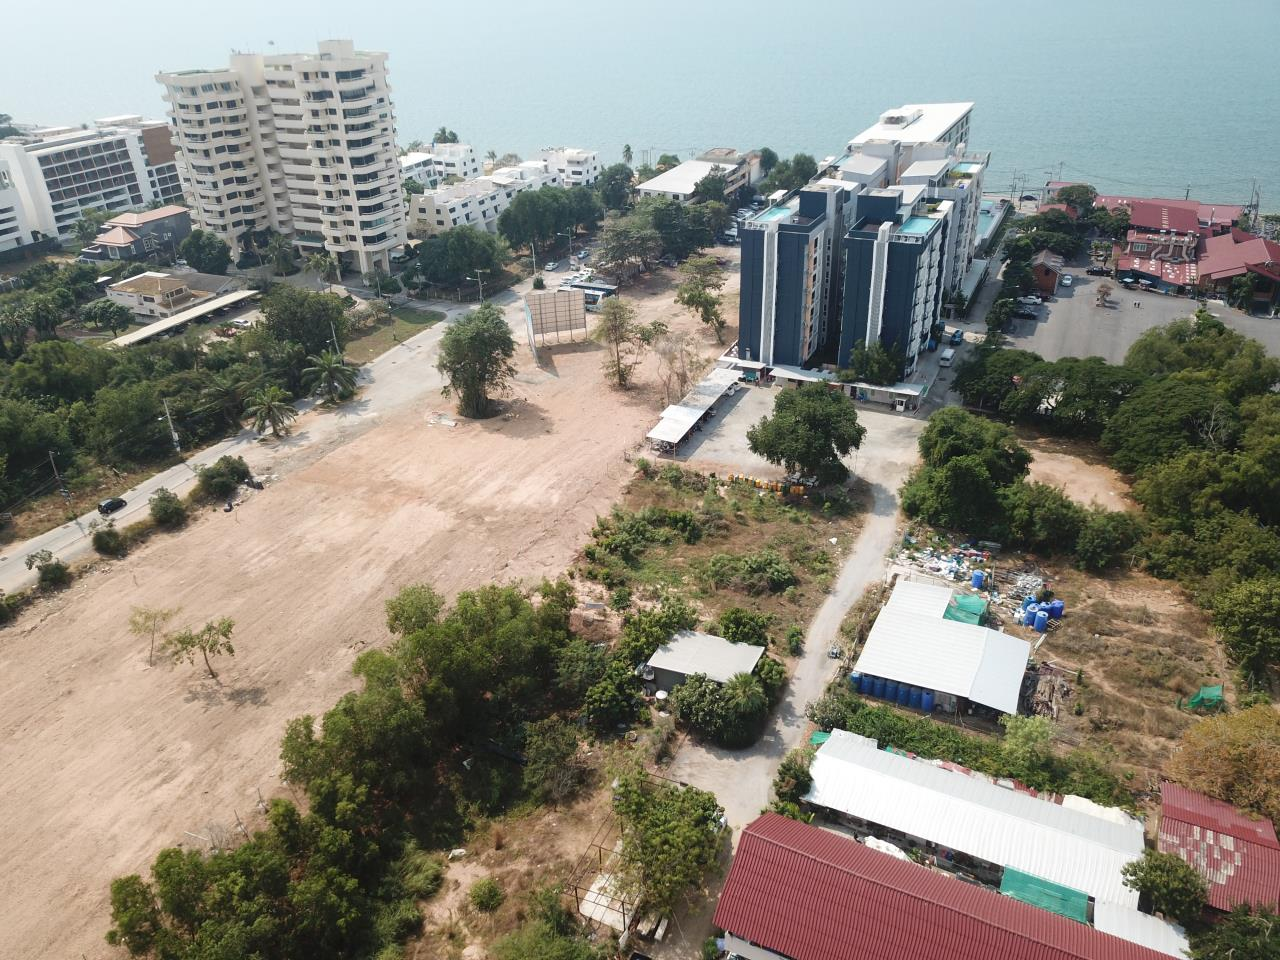 Thaiproperty1 Agency's 2,160 Sq.m Land Behind Pupen Restaurant - Jomtien Beach Road 5